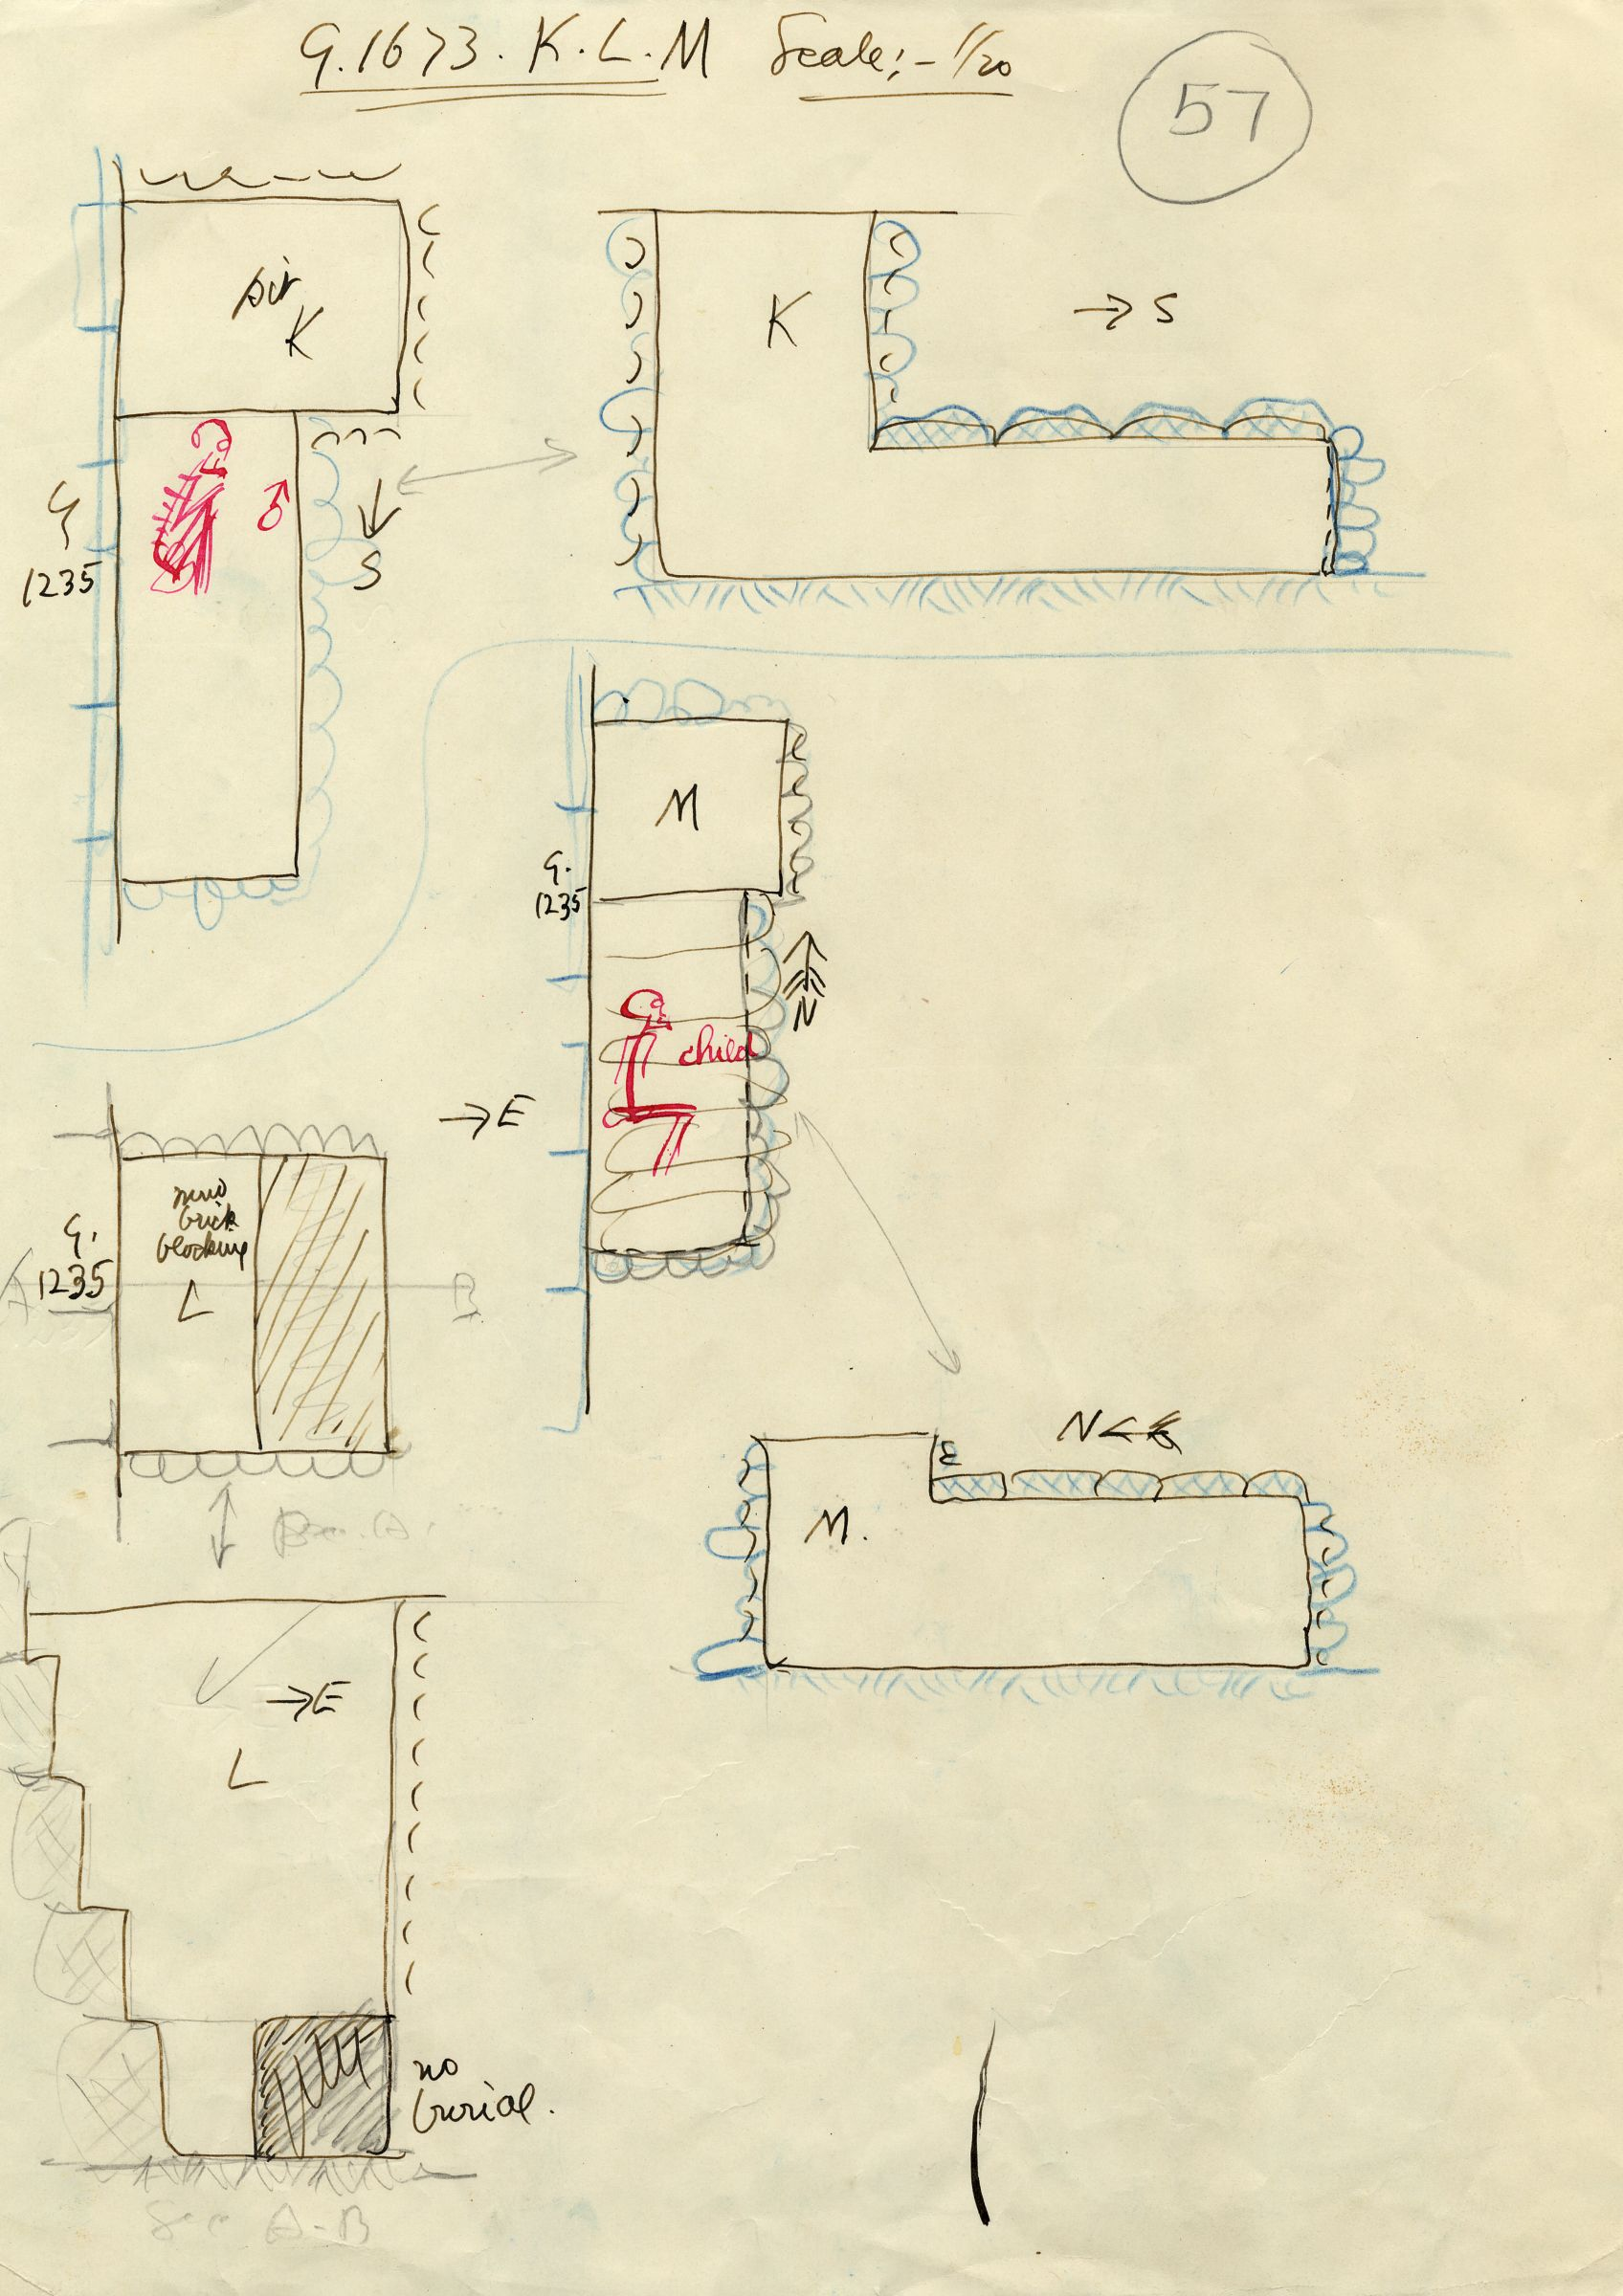 Maps and plans: G 1673, Shaft K, L, M